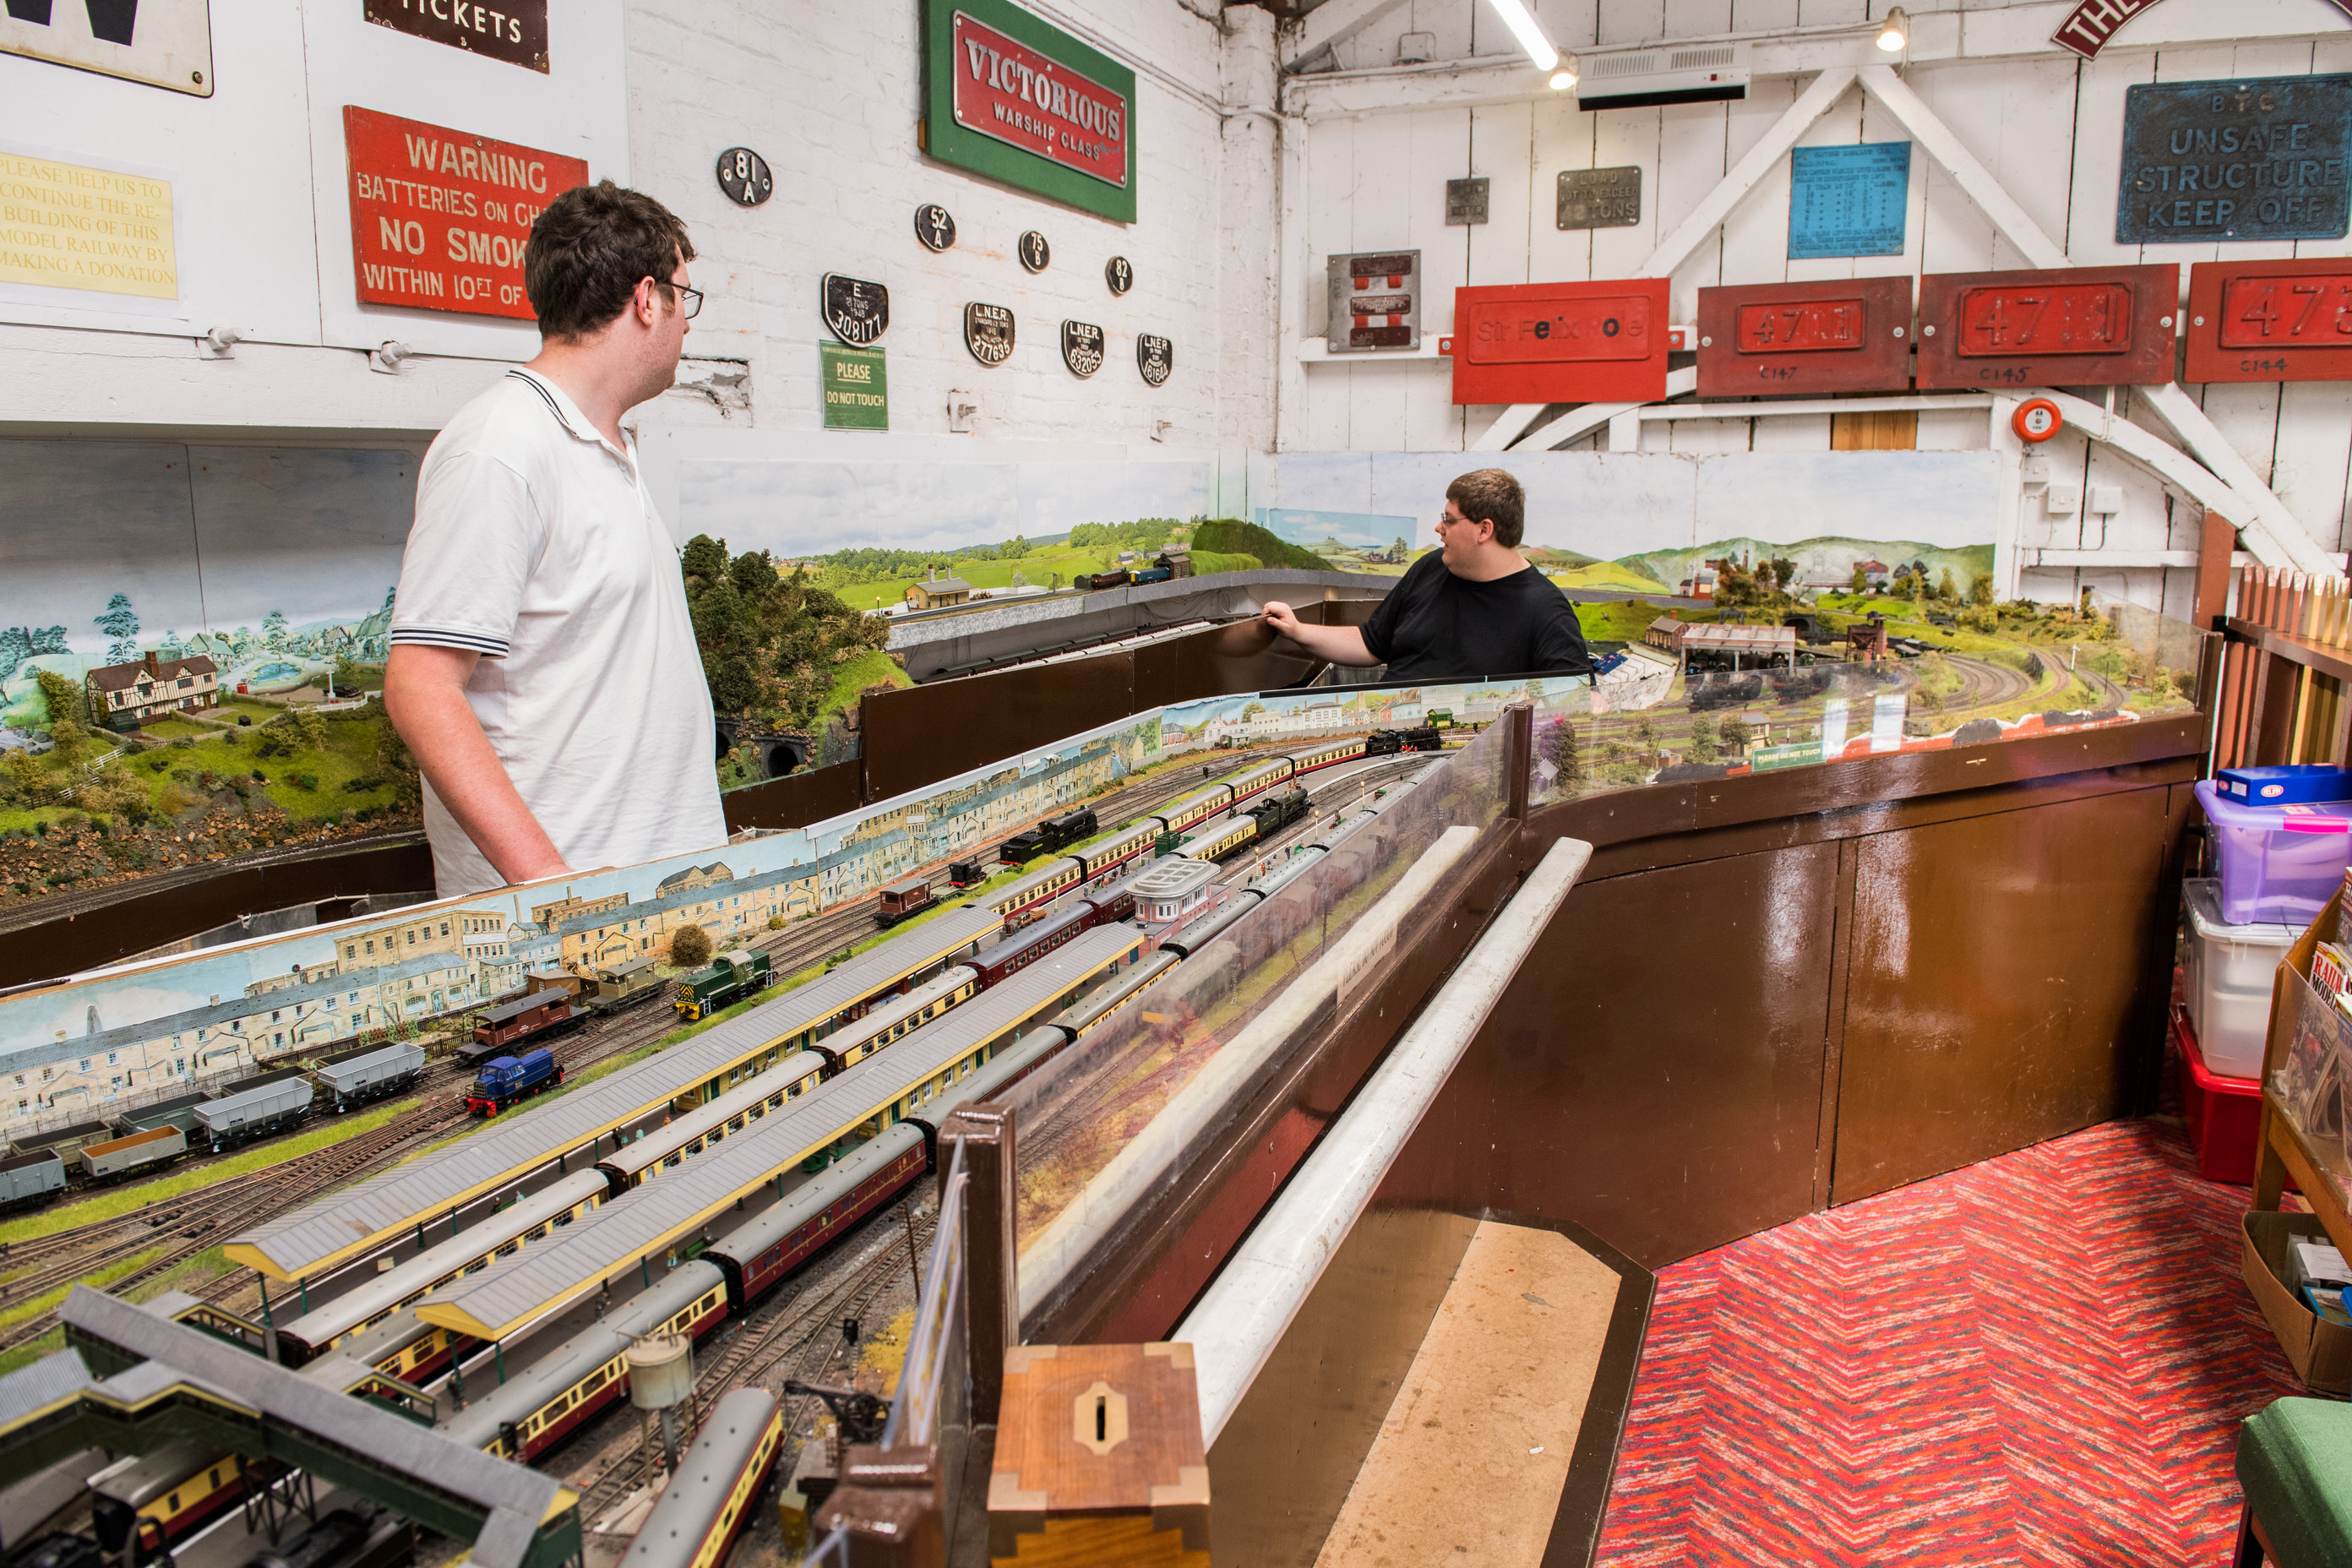 Days of opening for the Model Railway in the Gauge Museum